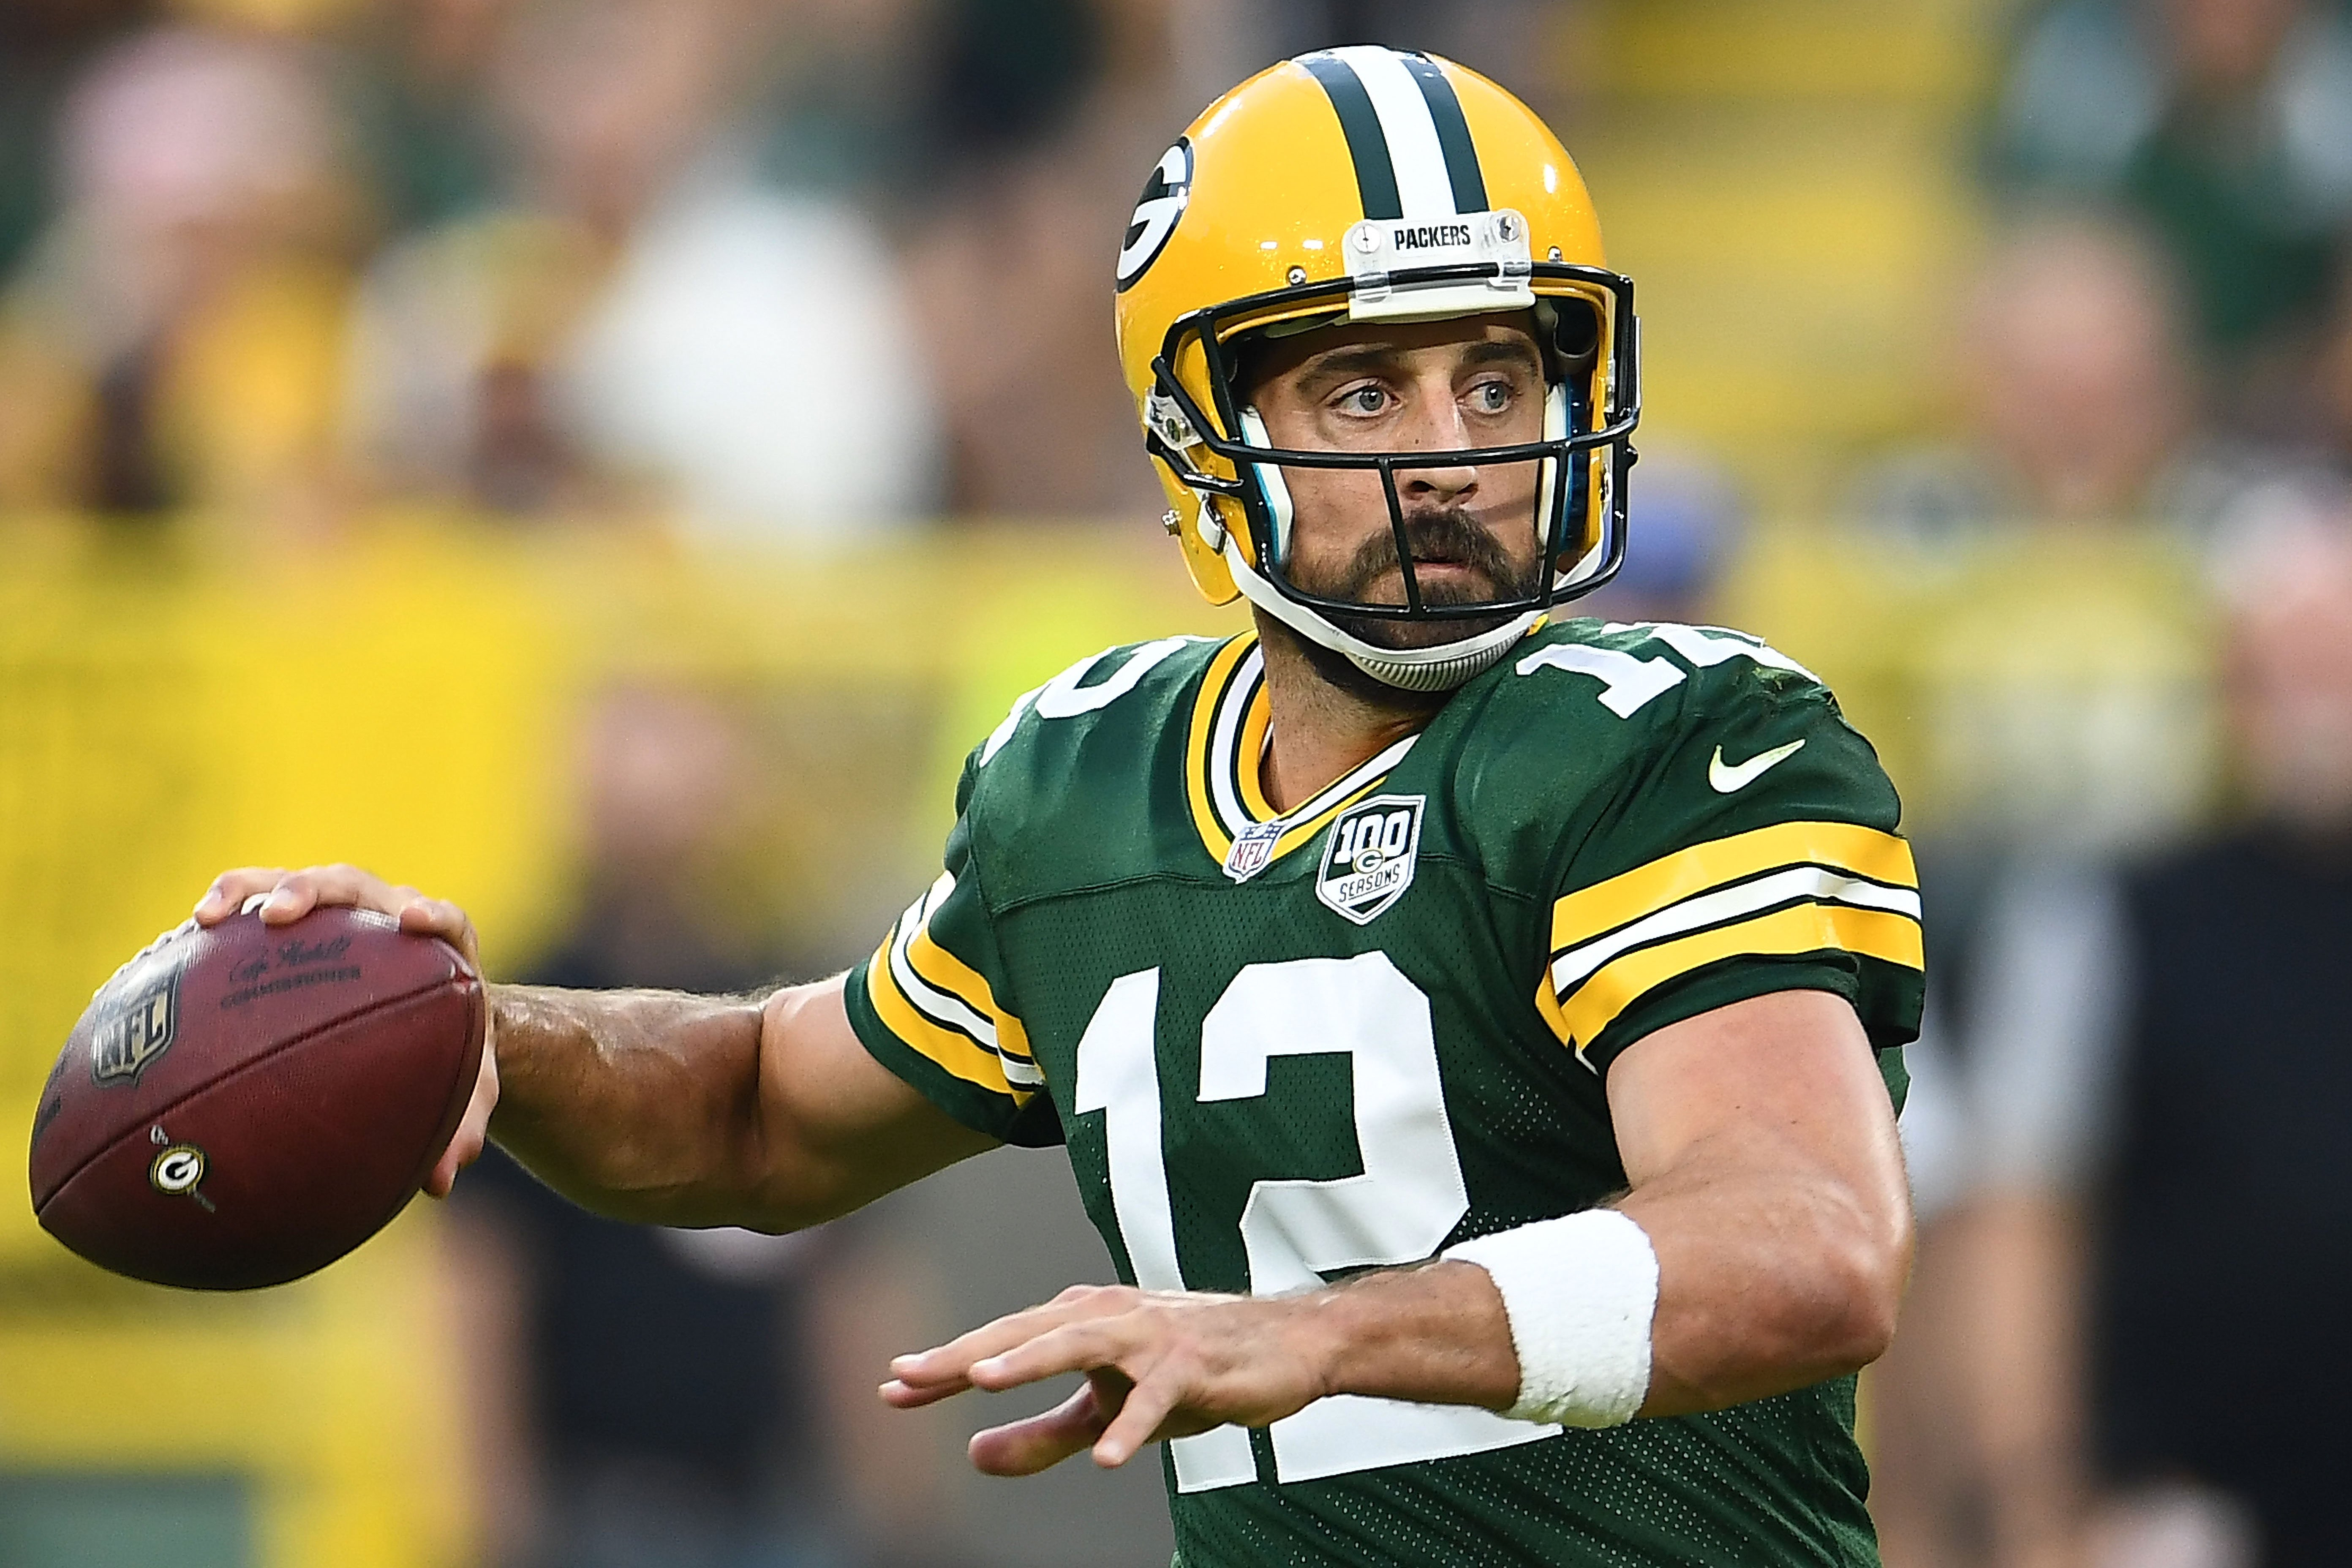 Aaron Rodgers #12 of the Green Bay Packers drops back to pass during a preseason game against the Pittsburgh Steelers at Lambeau Field on August 16, 2018 in Green Bay, Wisconsin   Photo: Getty Images